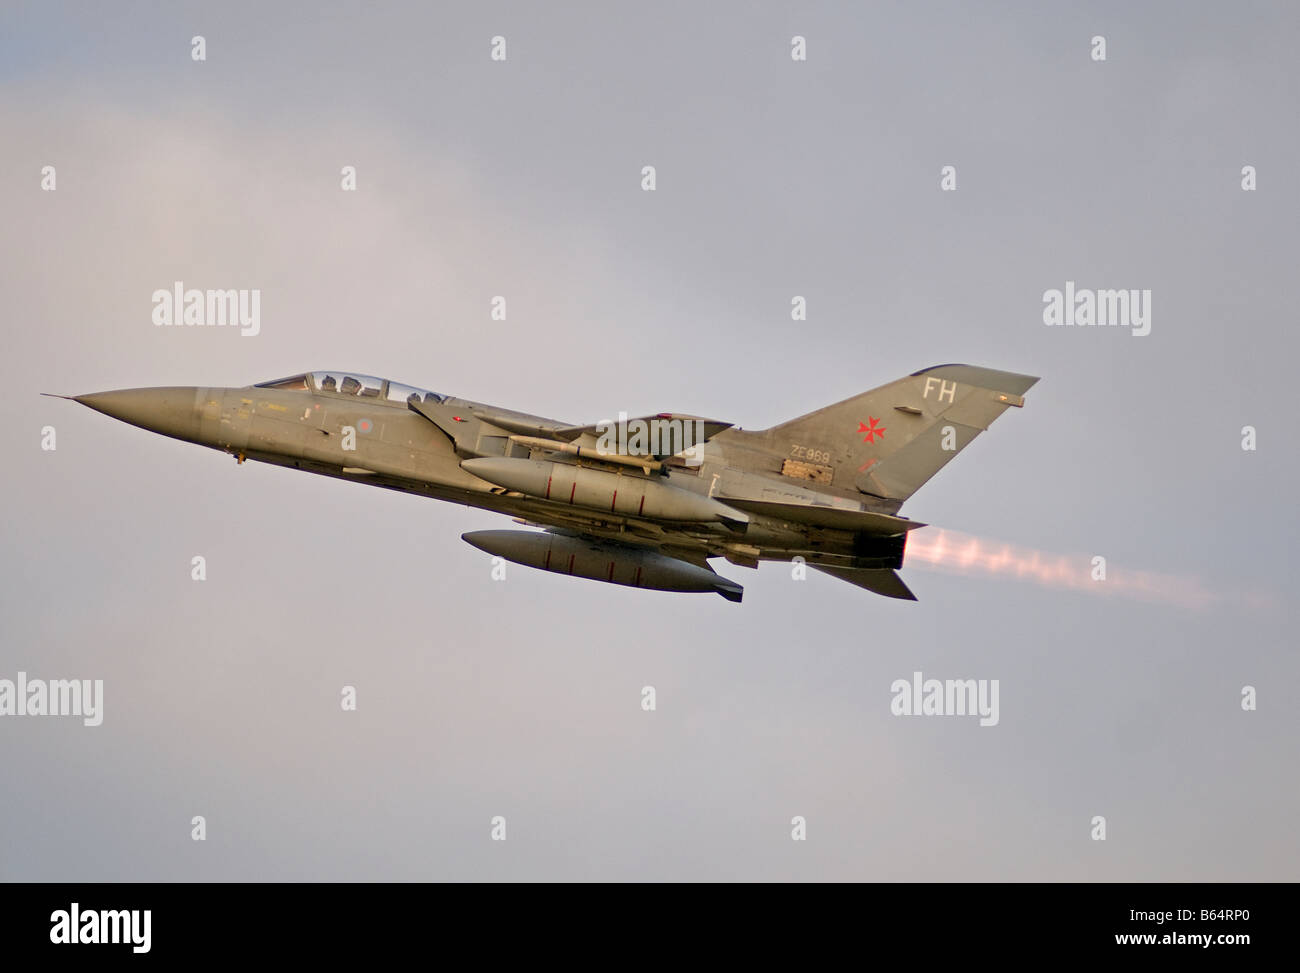 Panavia F3 Tornado on full reheat at take off RAF Kinloss Moray Grampian Region Scotland  SCO 2012 - Stock Image